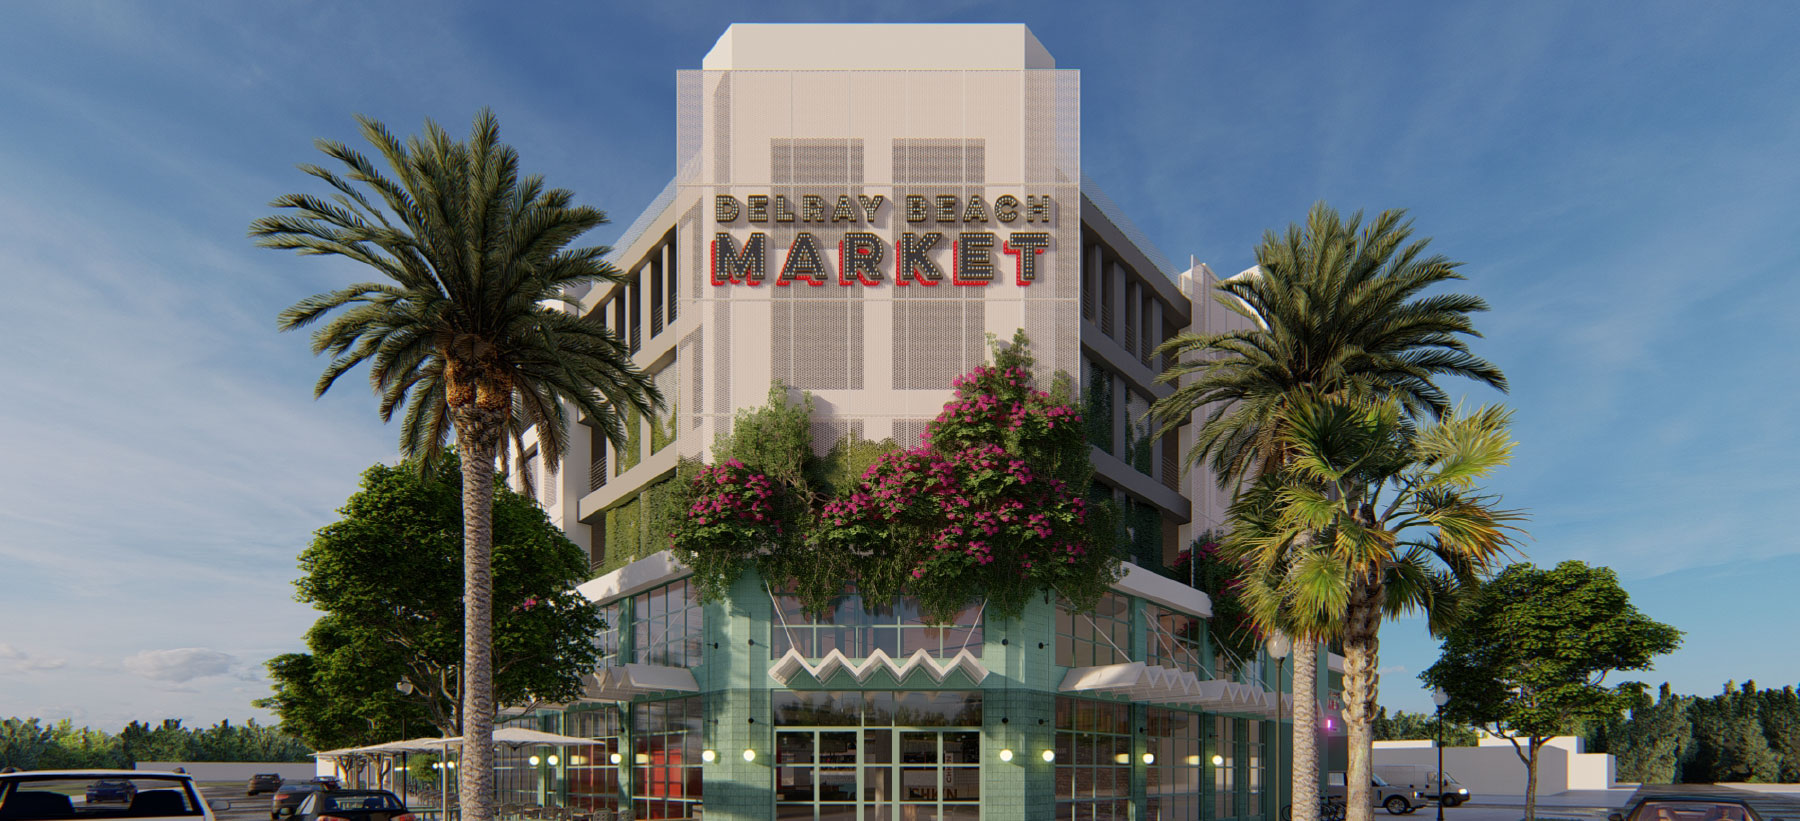 About Delray Beach Market